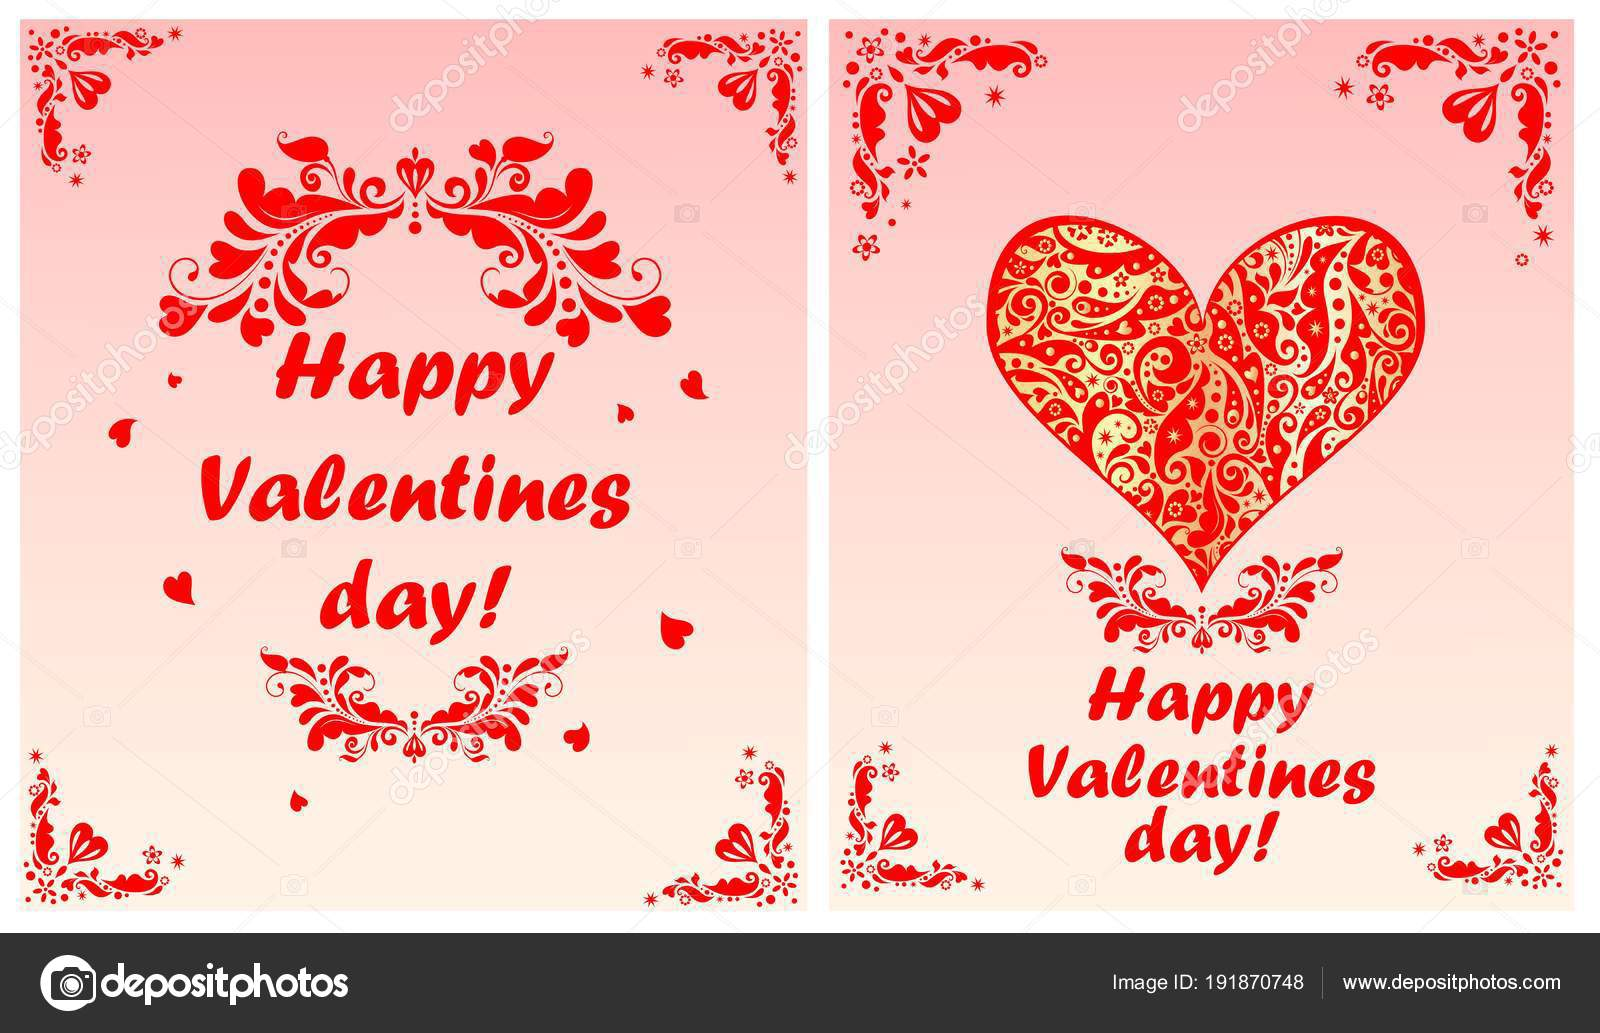 Greeting Cards Valentines Day Red Floral Decorative Header Heart ...